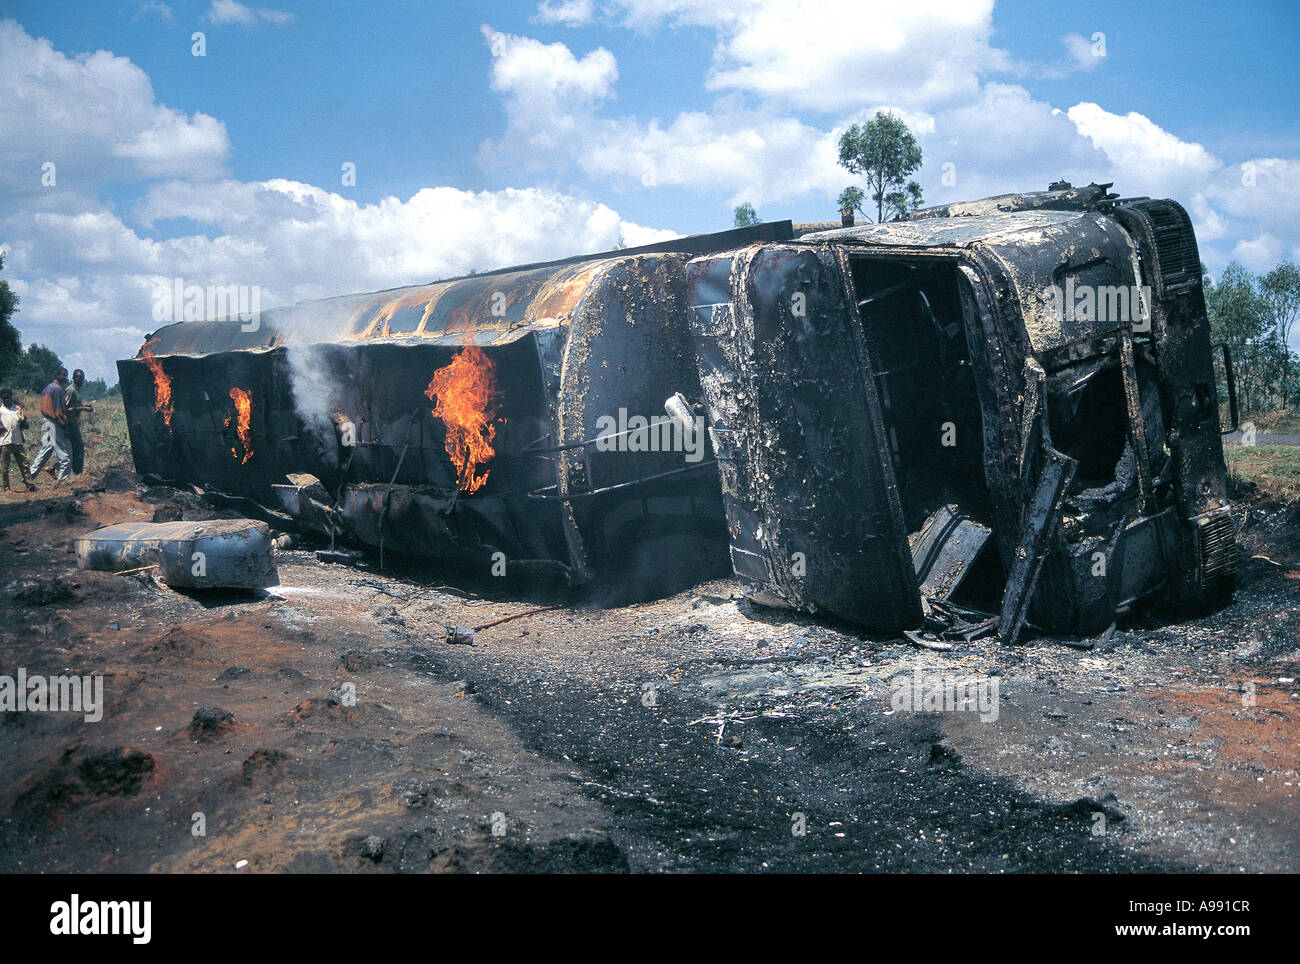 Wreck of Petrol tanker crashed and on fire Jimma Ethiopia - Stock Image